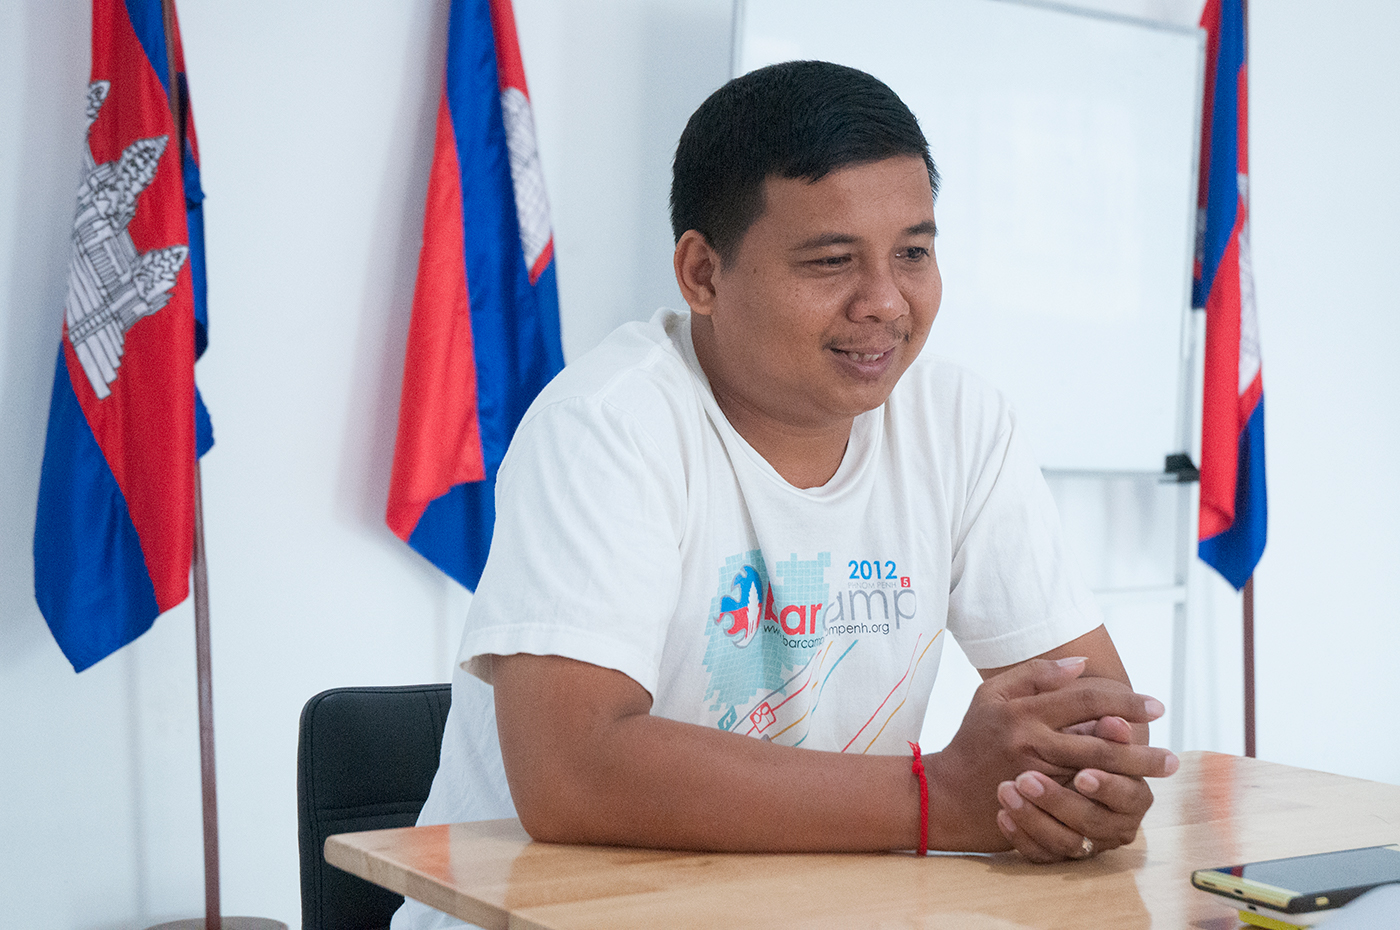 The reason why Chantra decided to join BarCamp Cambodia team